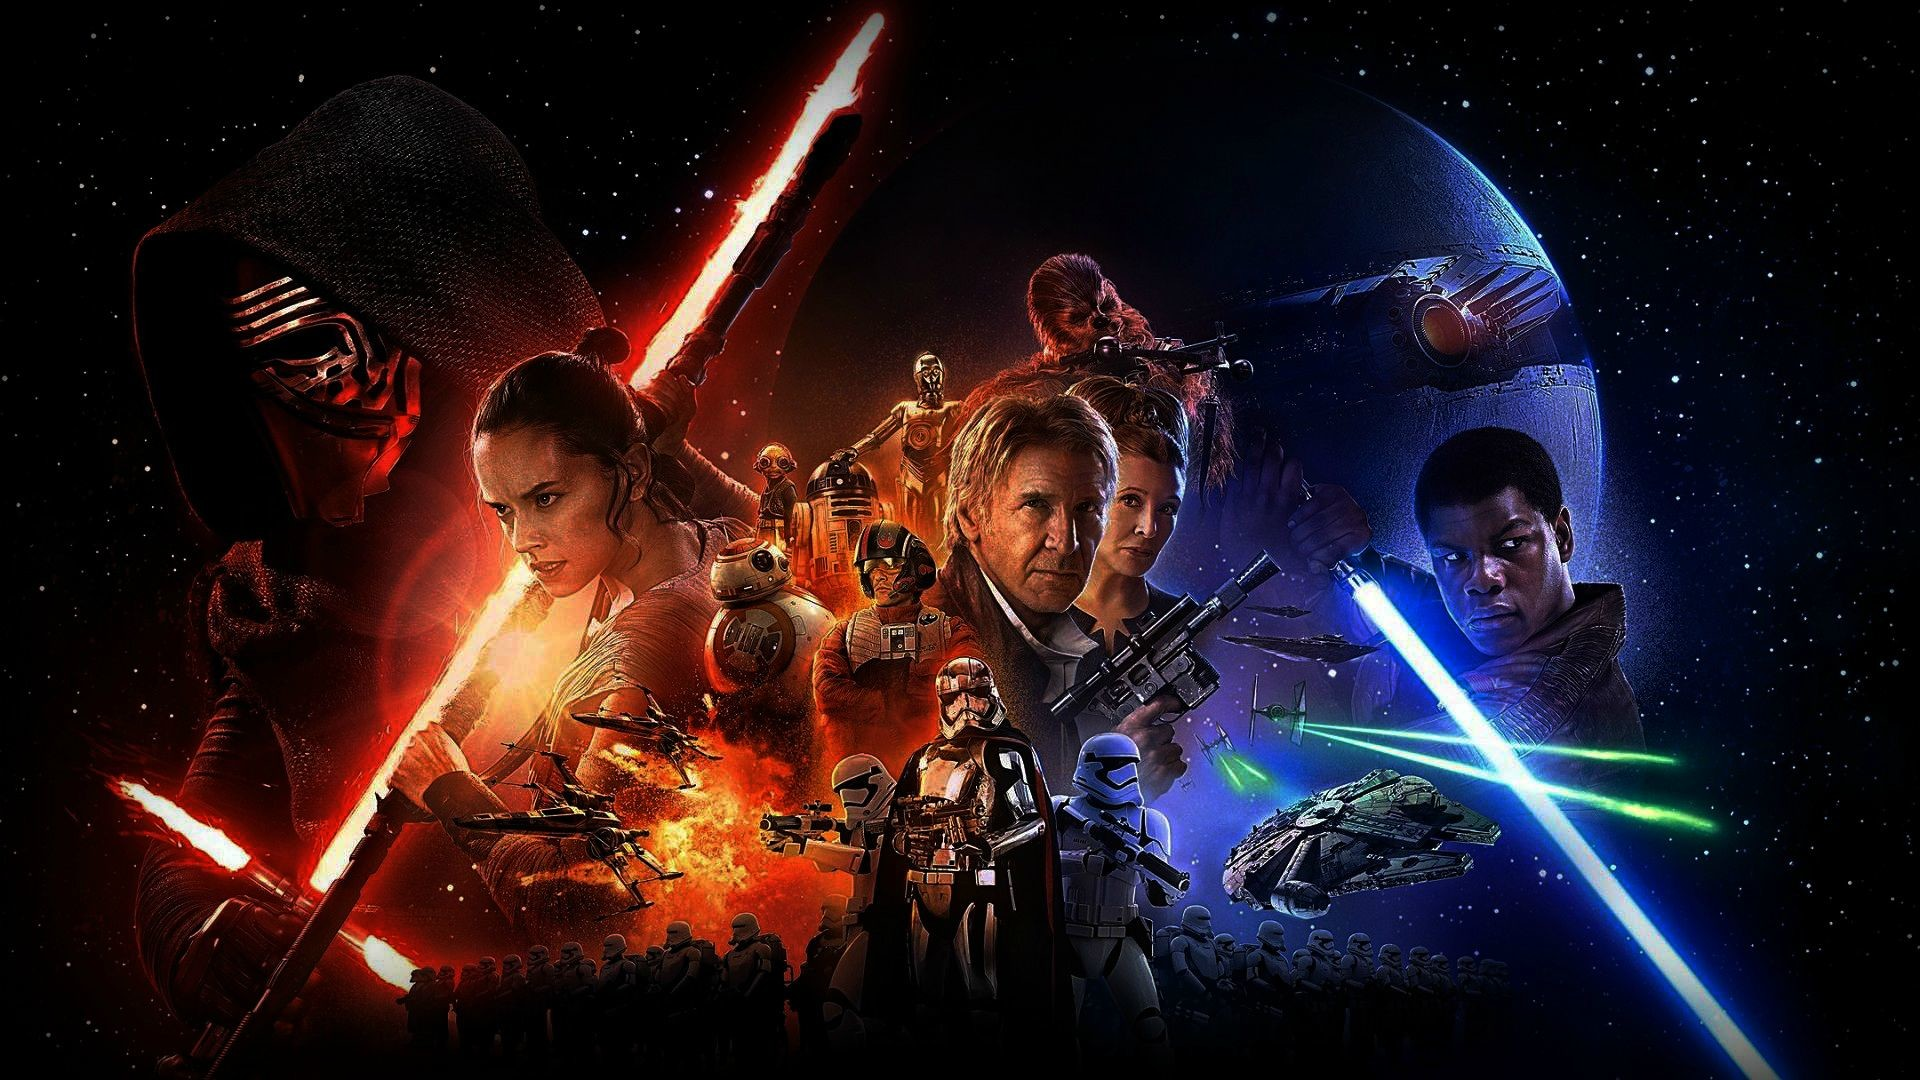 Star Wars Wallpaper Mac Posted By Zoey Sellers